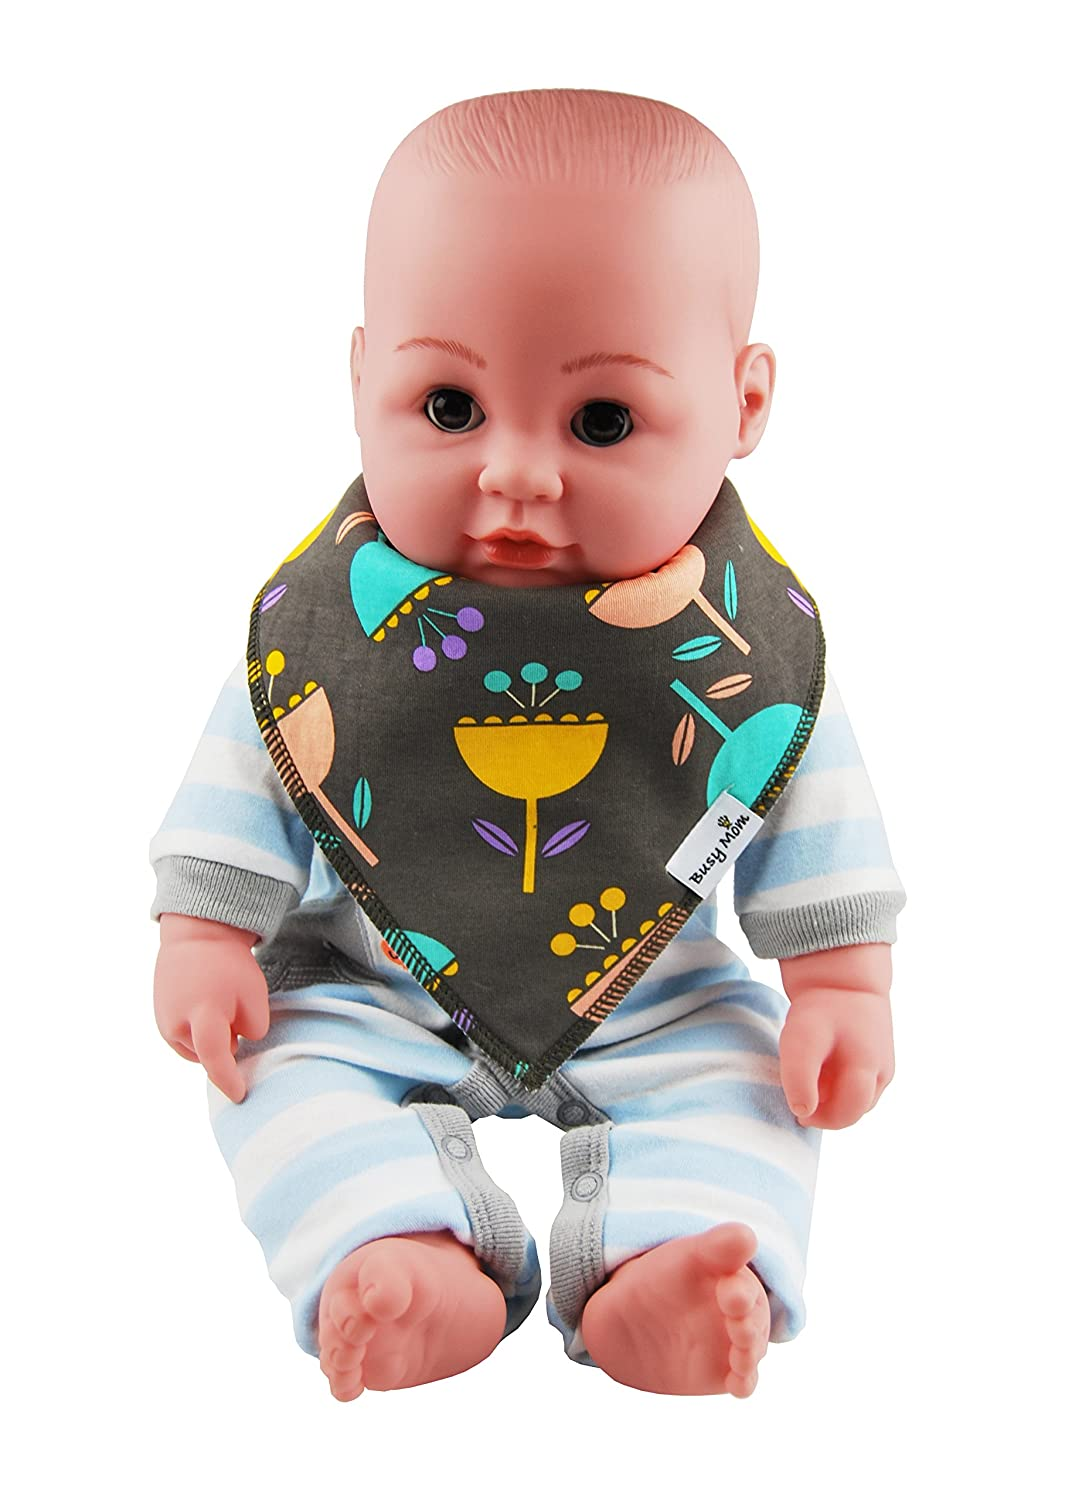 Z 4-Pack Unisex Baby Toddlers Bandana Drool Bibs with Snaps 100/% Soft Cotton Unique Shower Gift Set Super Absorbent for Teething Feeding Fashion Adjustable